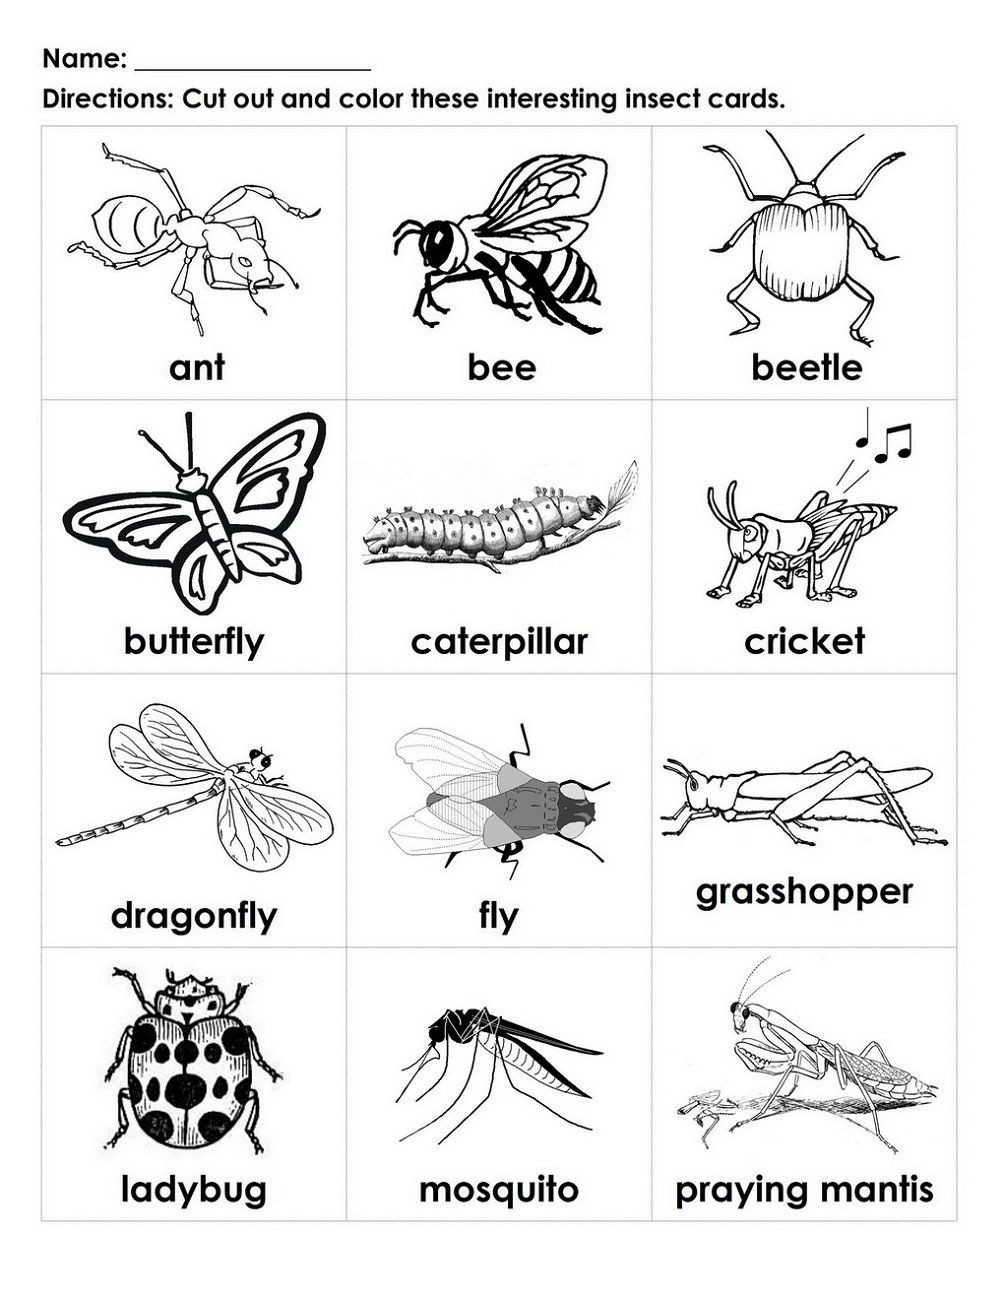 Insect Worksheets for Preschoolers Free Handouts for Learning with Images